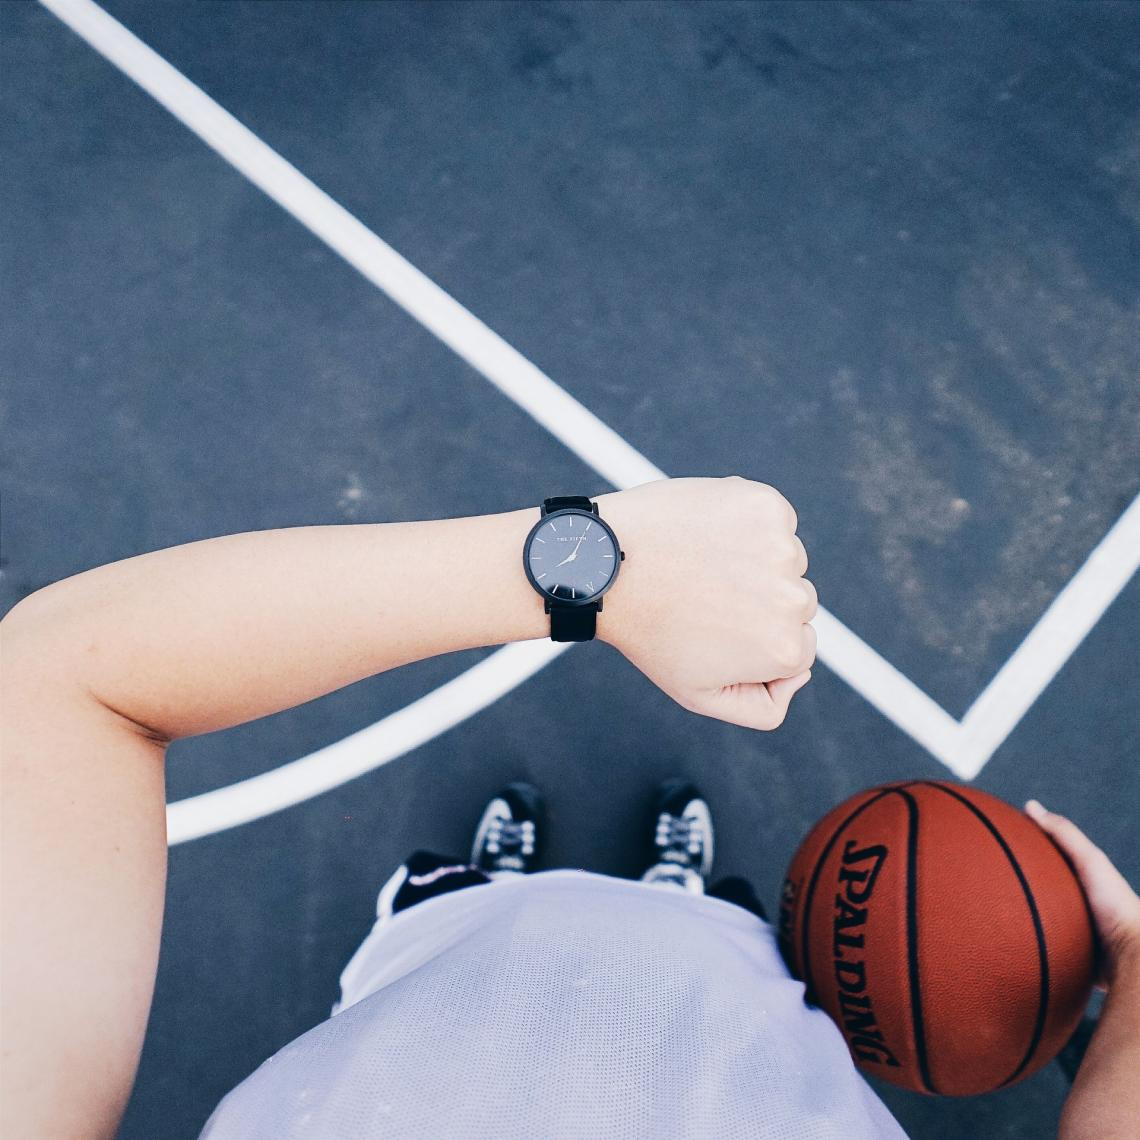 Forty-three percent of athletes surveyed said they get less than seven hours of sleep a night.